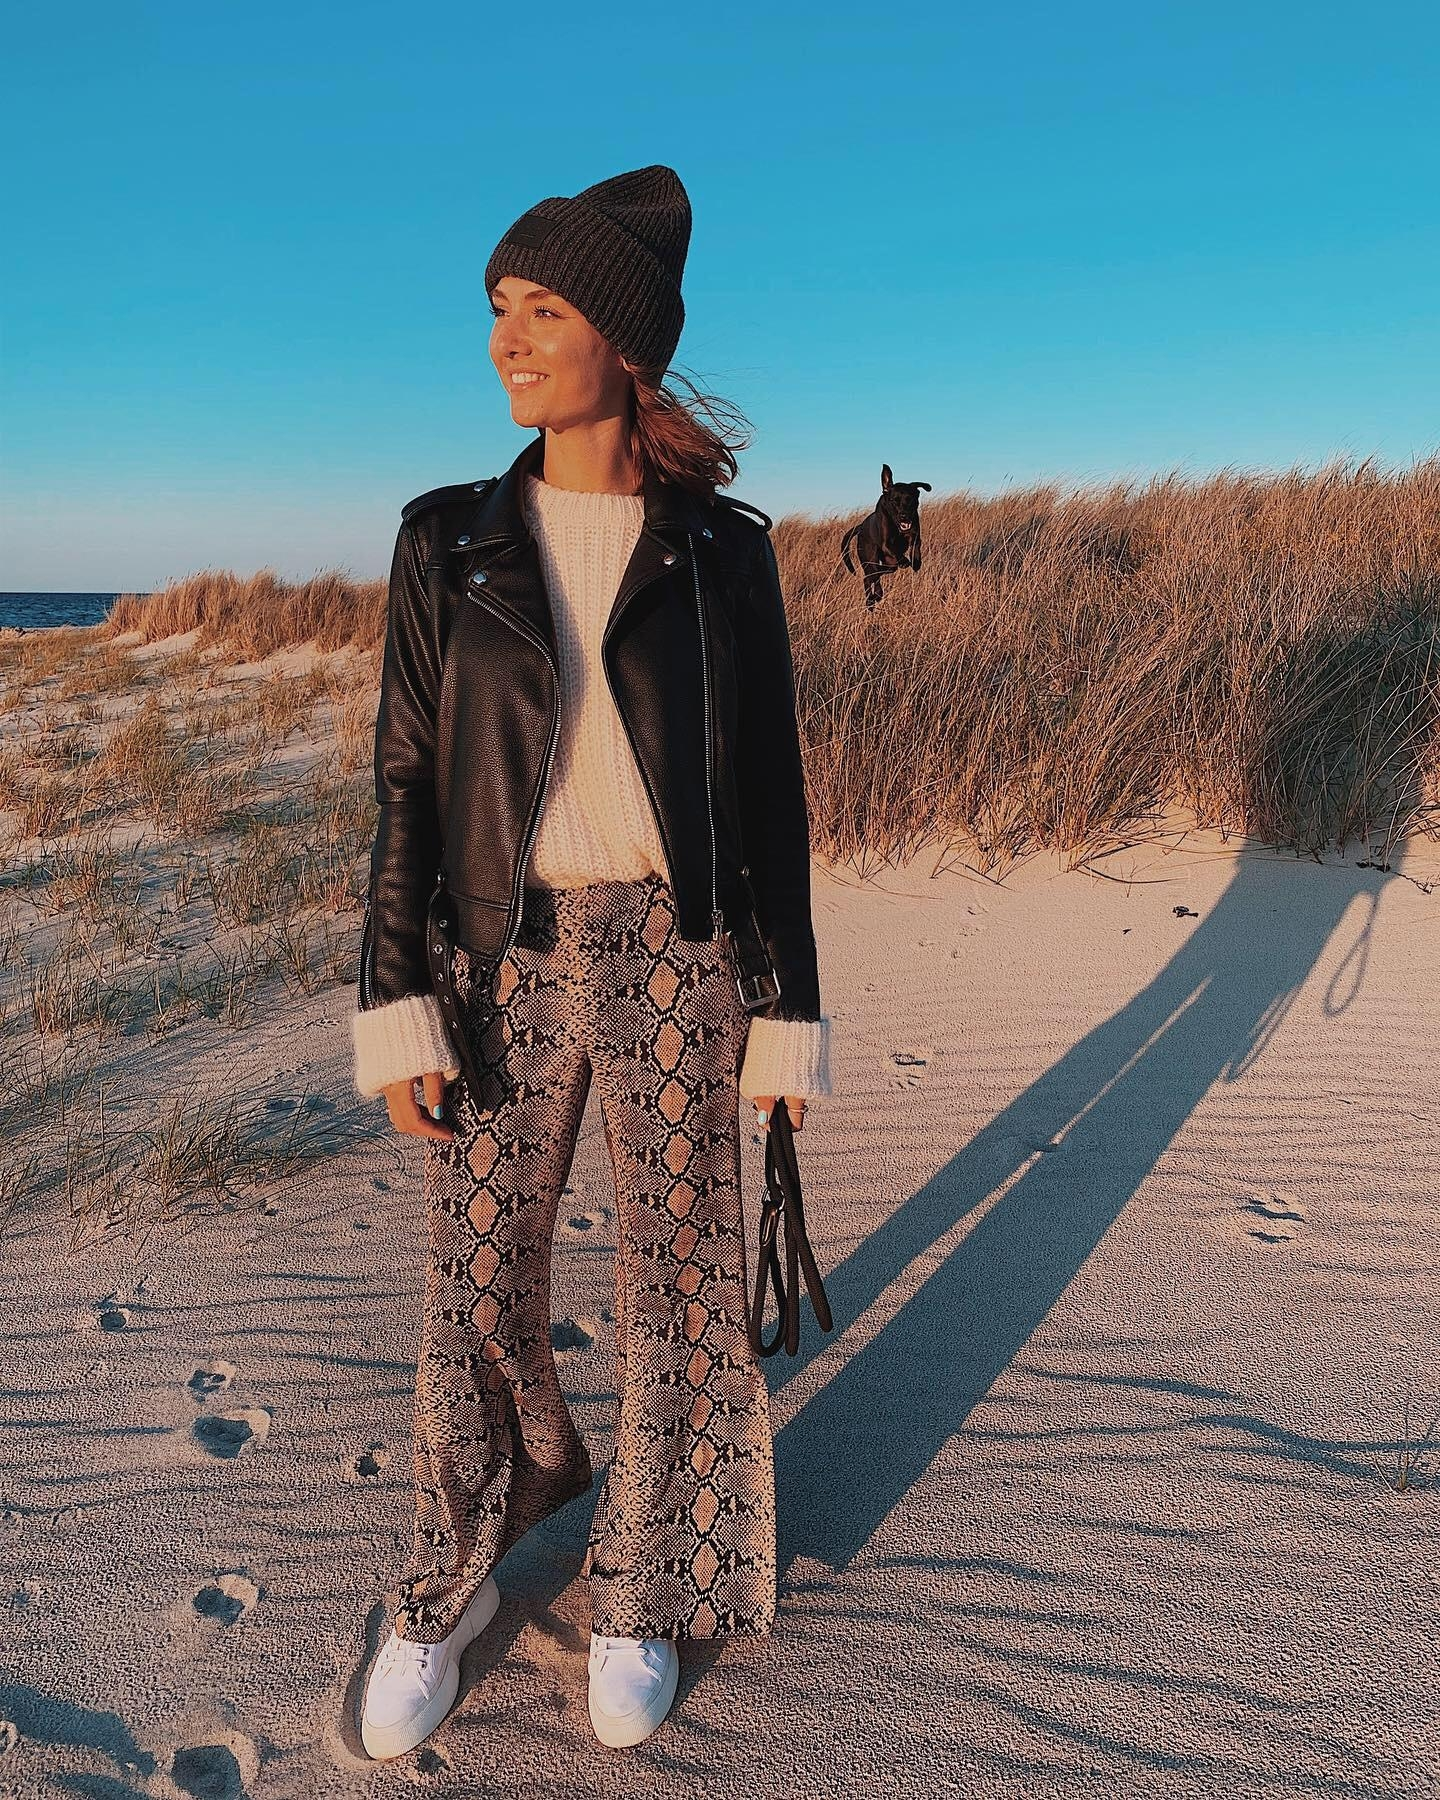 Meerweh am Montag 🌾🌊 #fashionmonday #falllook #outfit #snakeprint #leatherjacket #cozylook